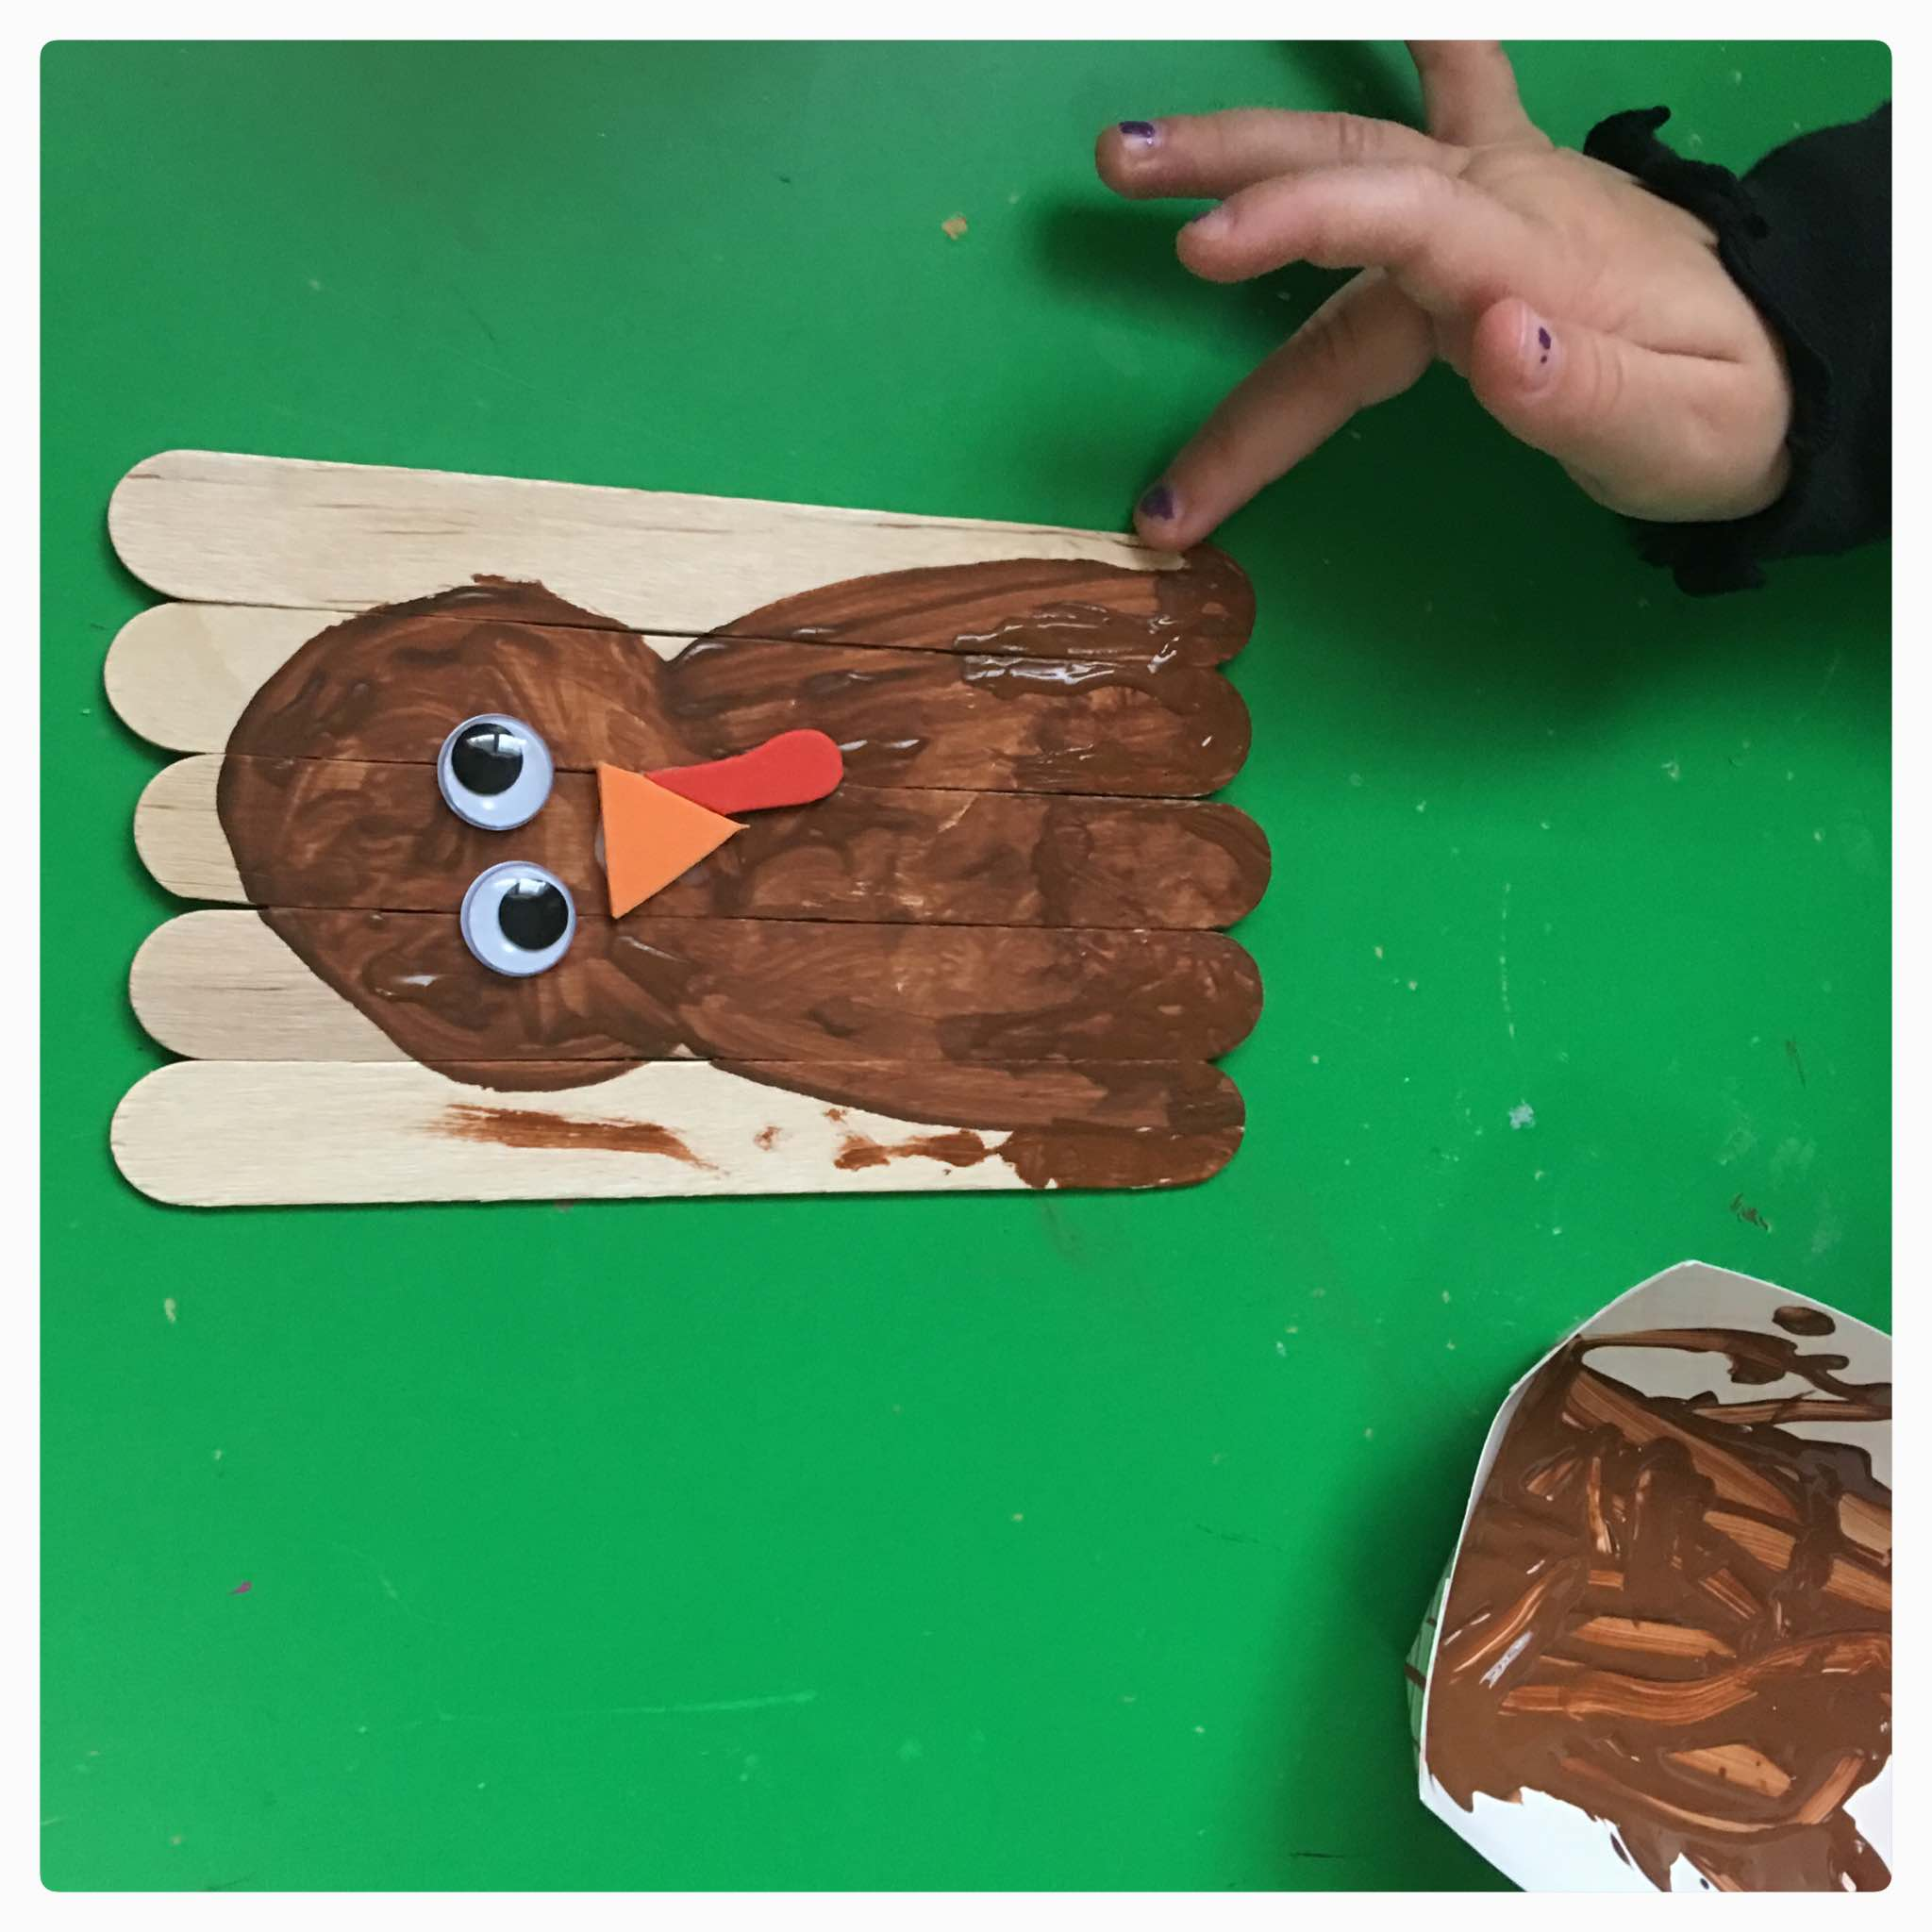 Fun and simple craft project for Thanksgiving using jumbo craft sticks (popsicle sticks).